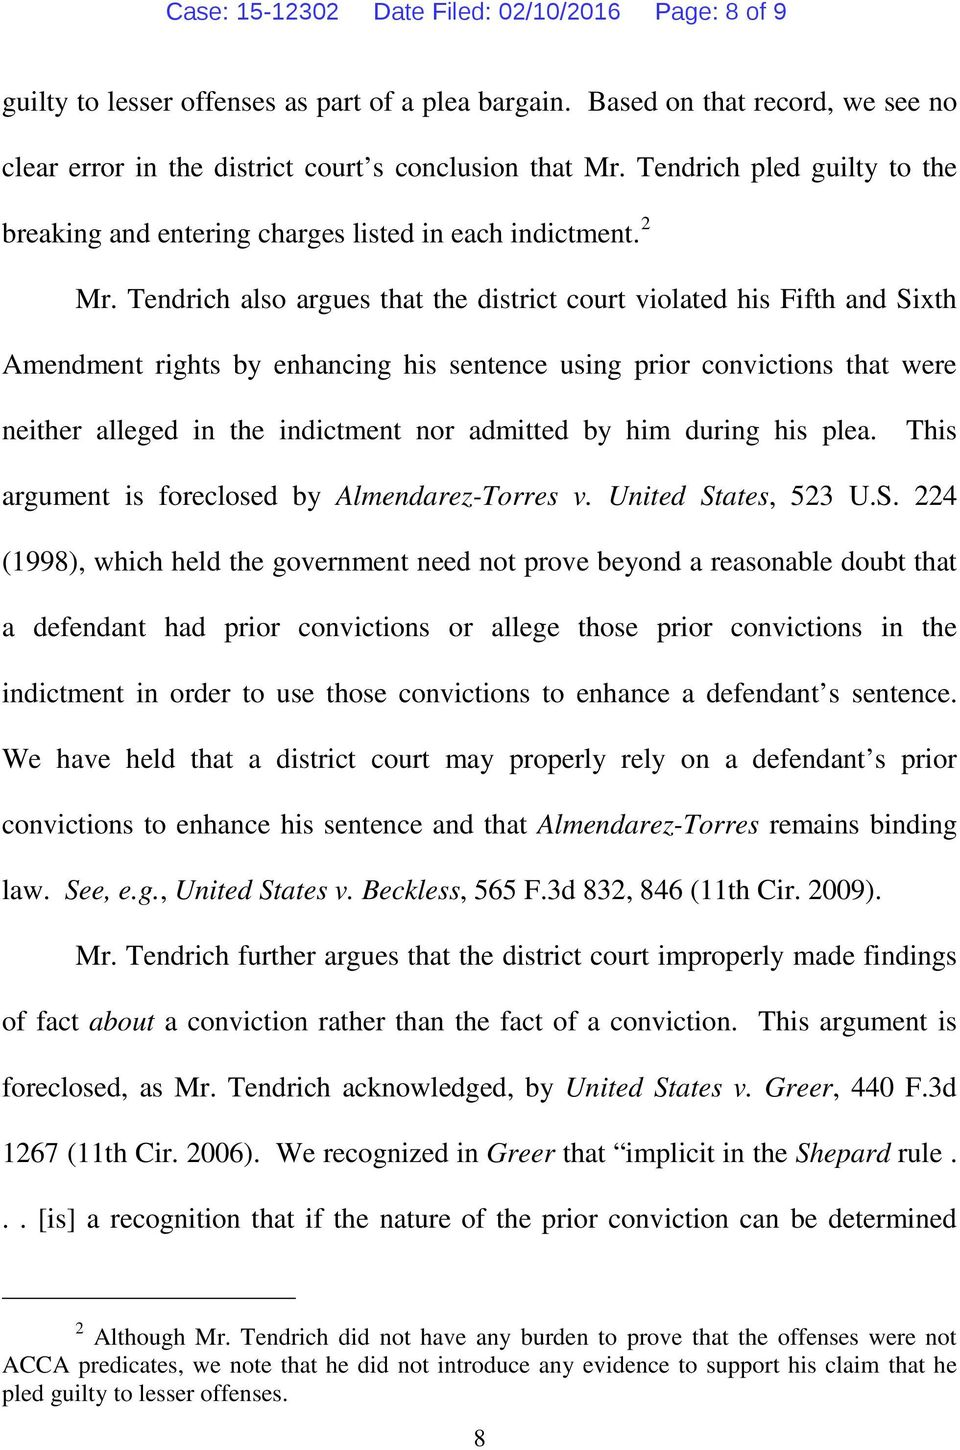 Tendrich also argues that the district court violated his Fifth and Sixth Amendment rights by enhancing his sentence using prior convictions that were neither alleged in the indictment nor admitted